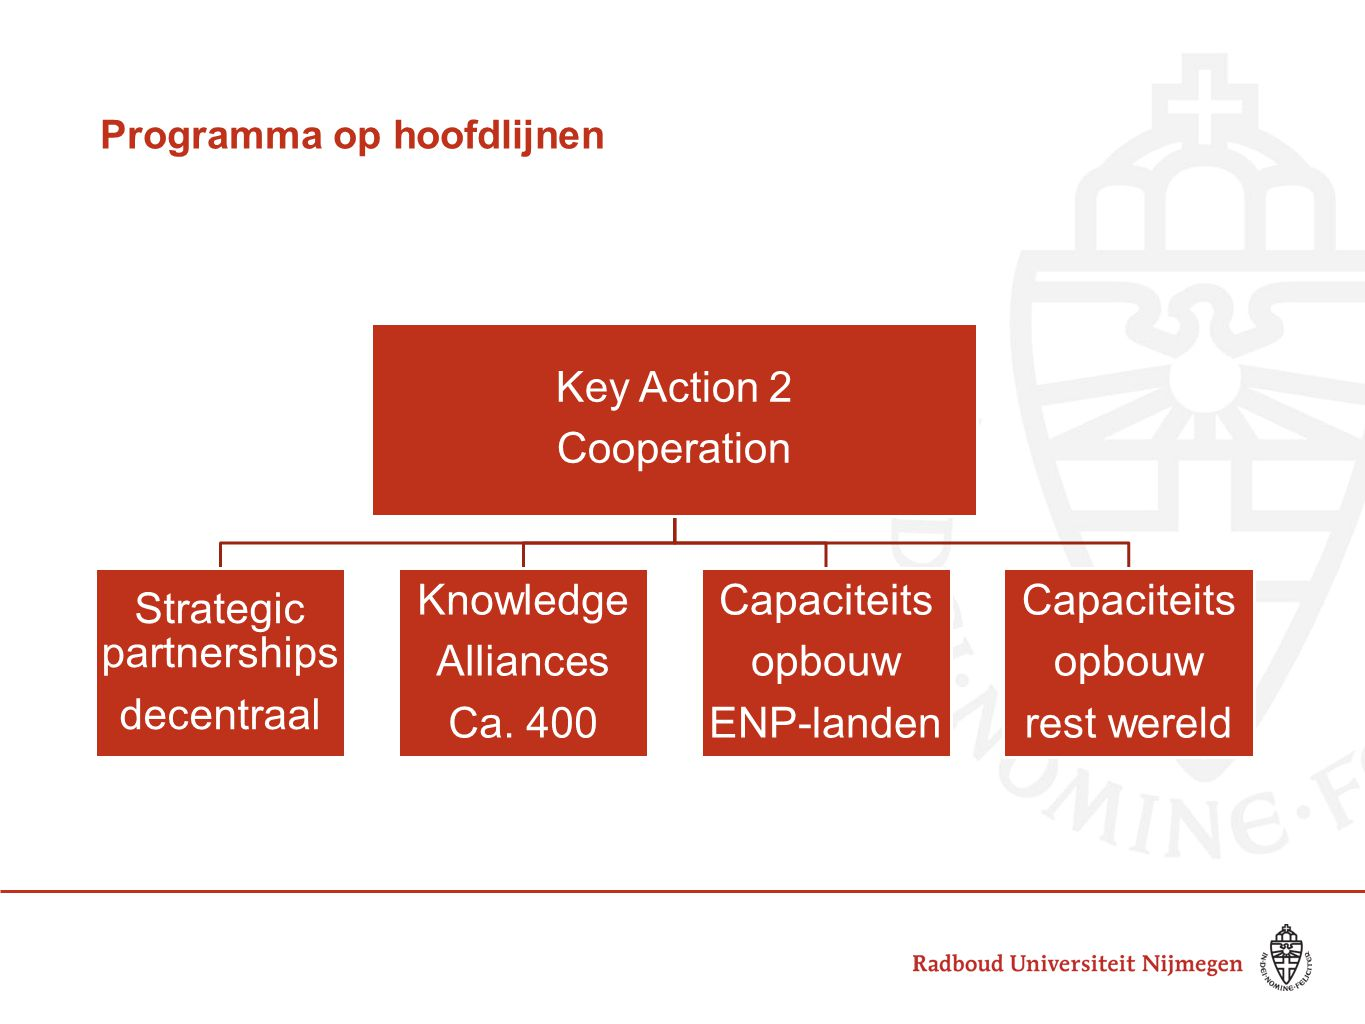 Programma op hoofdlijnen Key Action 2 Cooperation Strategic partnerships decentraal Knowledge Alliances Ca. 400 Capaciteits opbouw ENP-landen Capacite